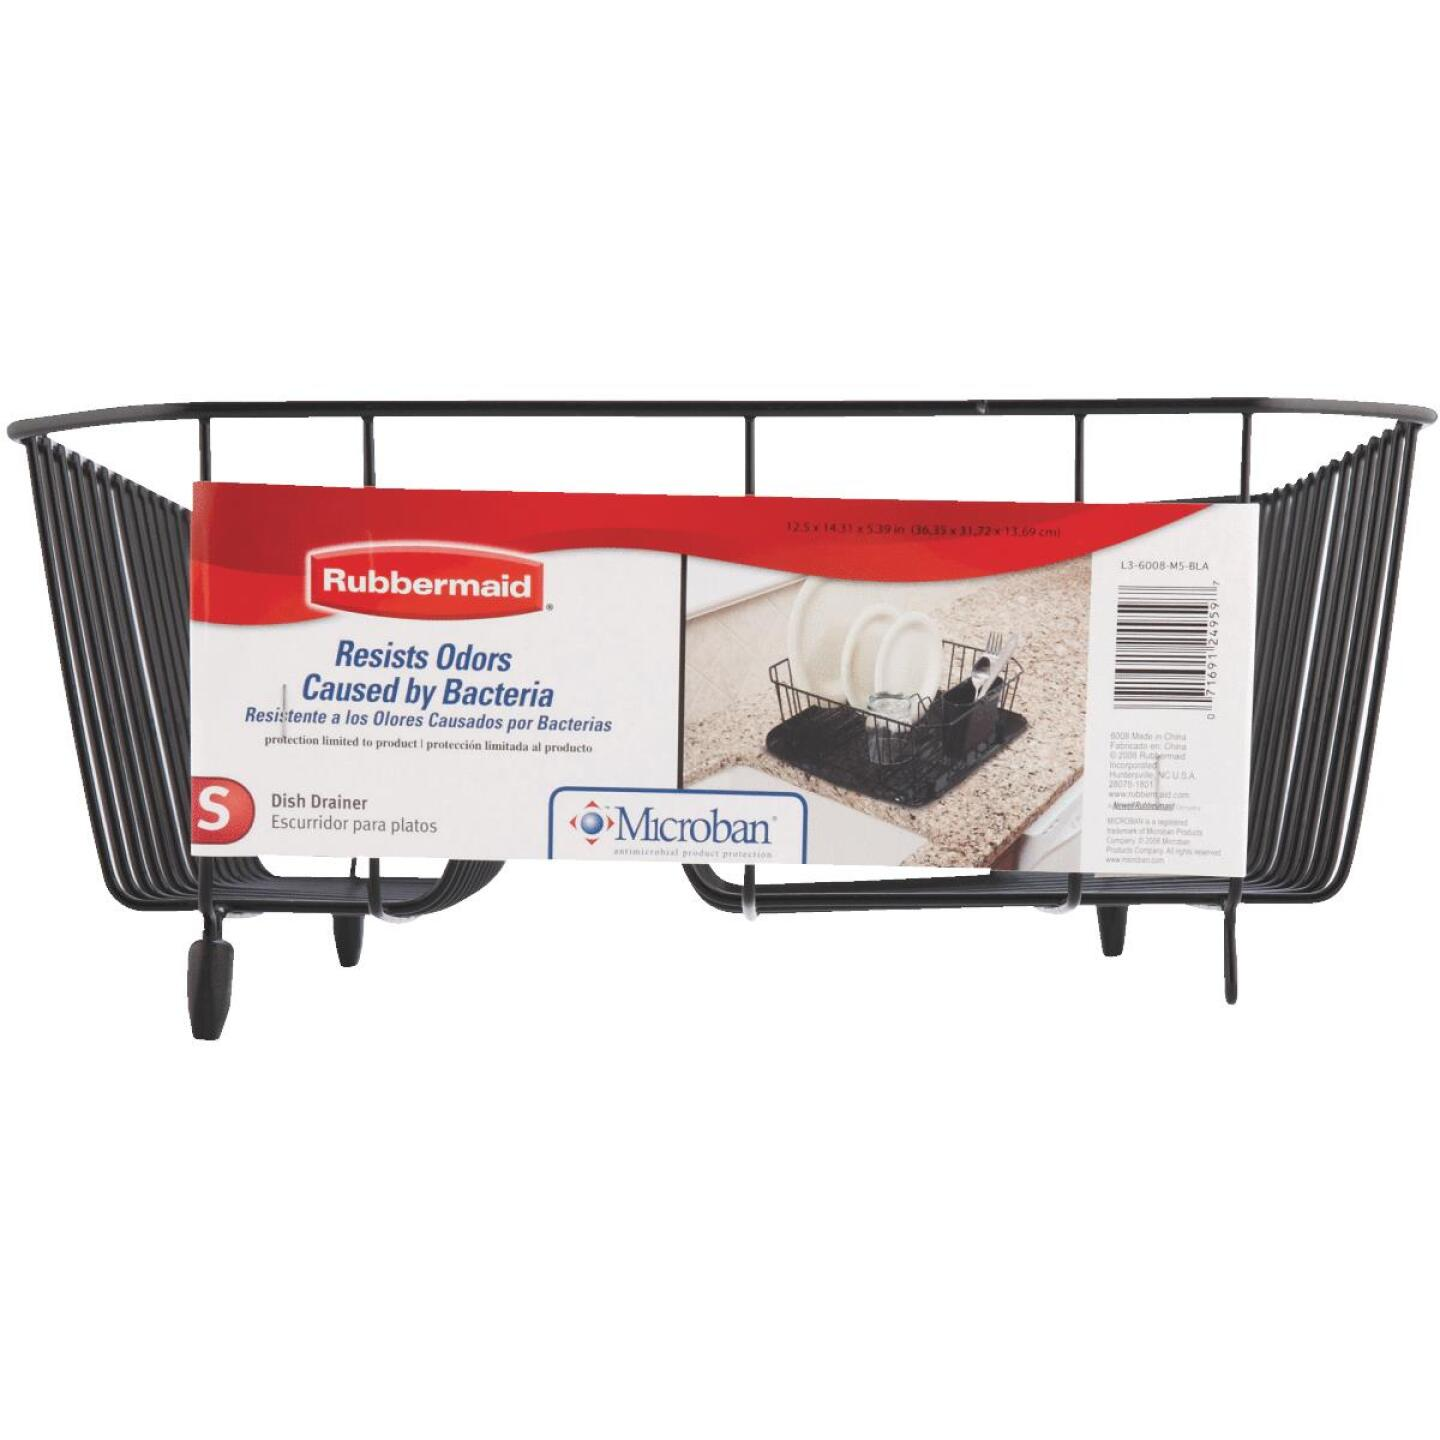 Rubbermaid 12.49 In. x 14.31 In. Black Wire Sink Dish Drainer Image 3